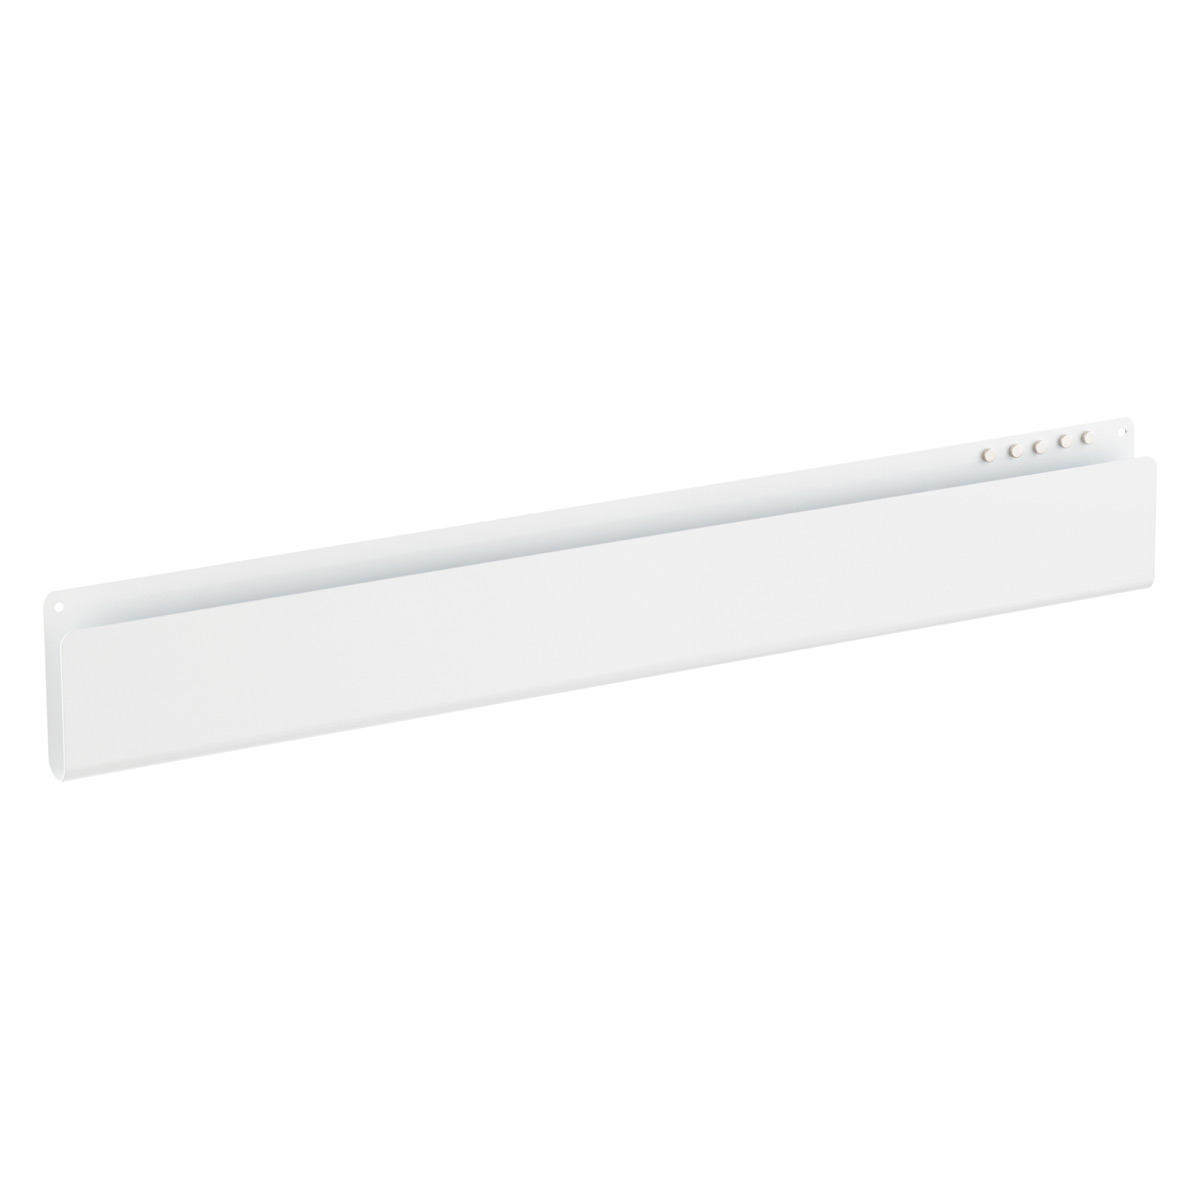 Magnetic Wall Pocket Strip